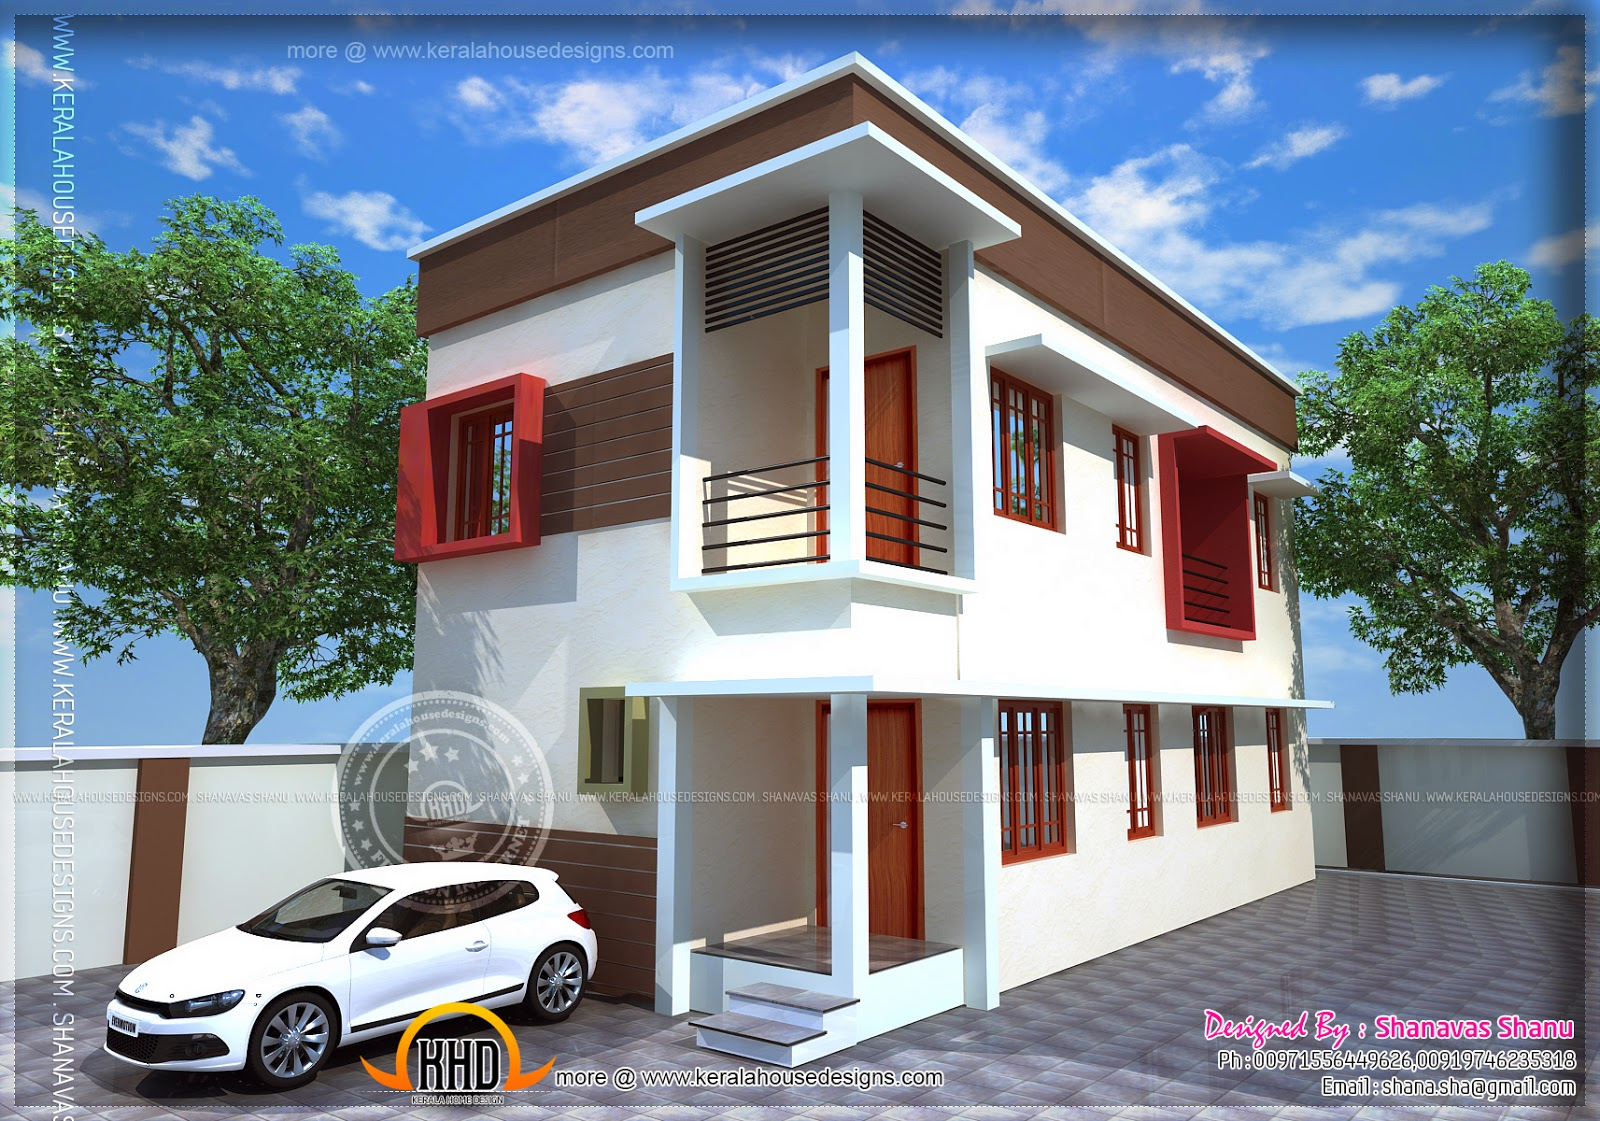 Small plot villa in cents of land kerala home for Indian small house design 2 bedroom